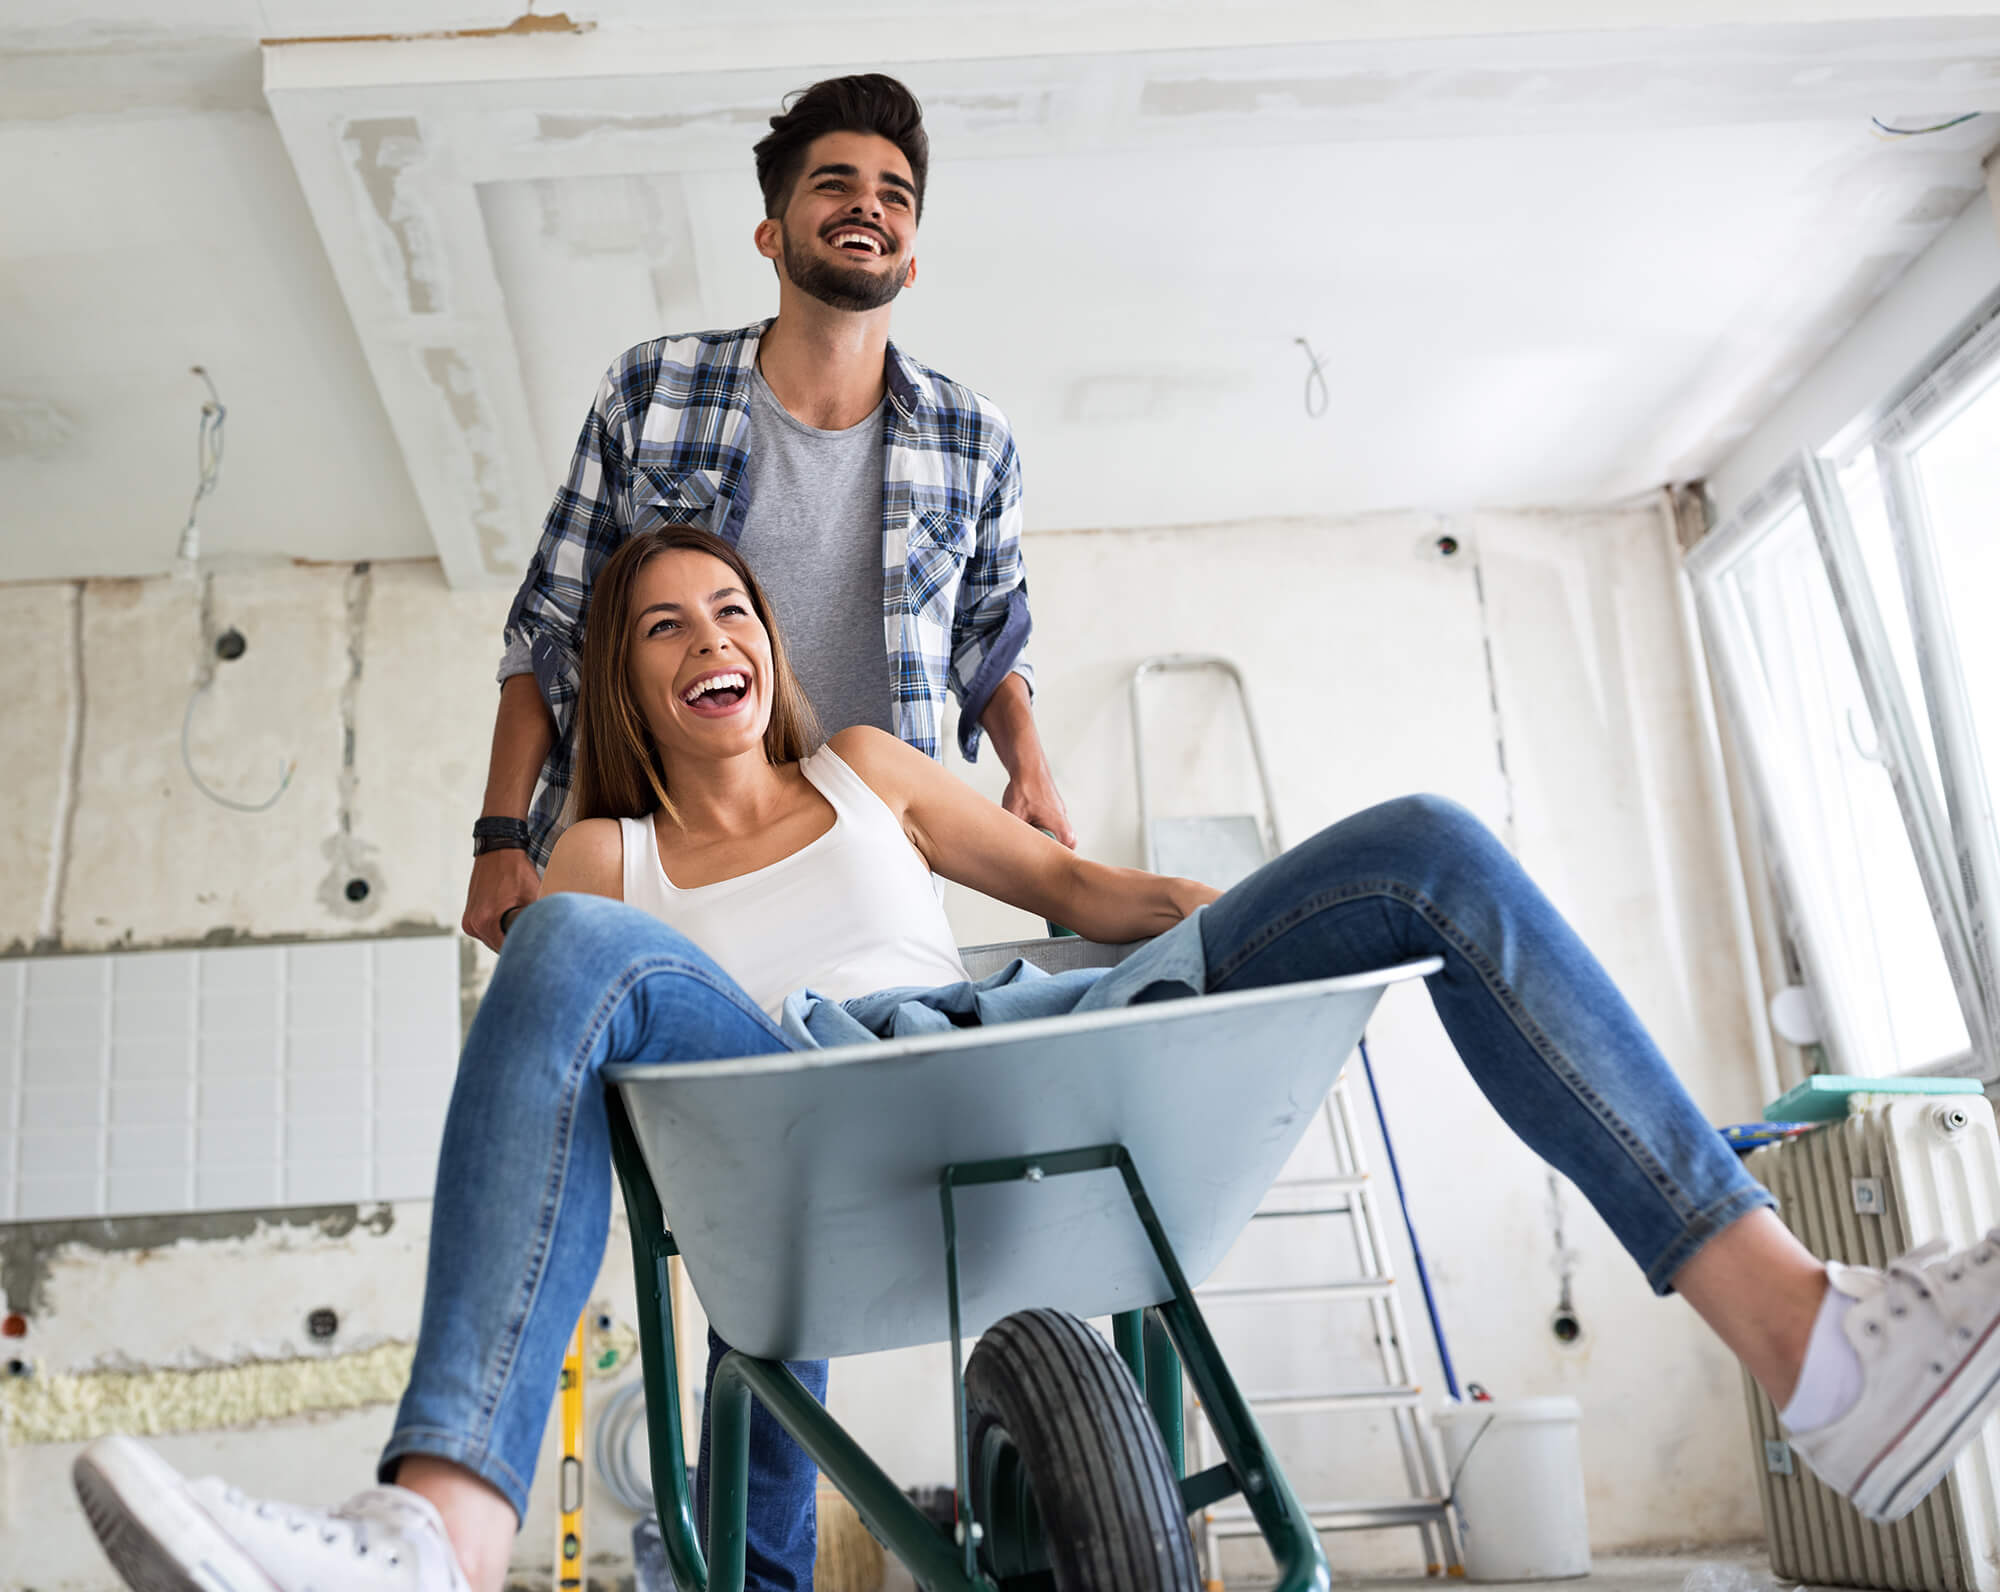 Man pushing women in wheelbarrow for fun in renovated house project